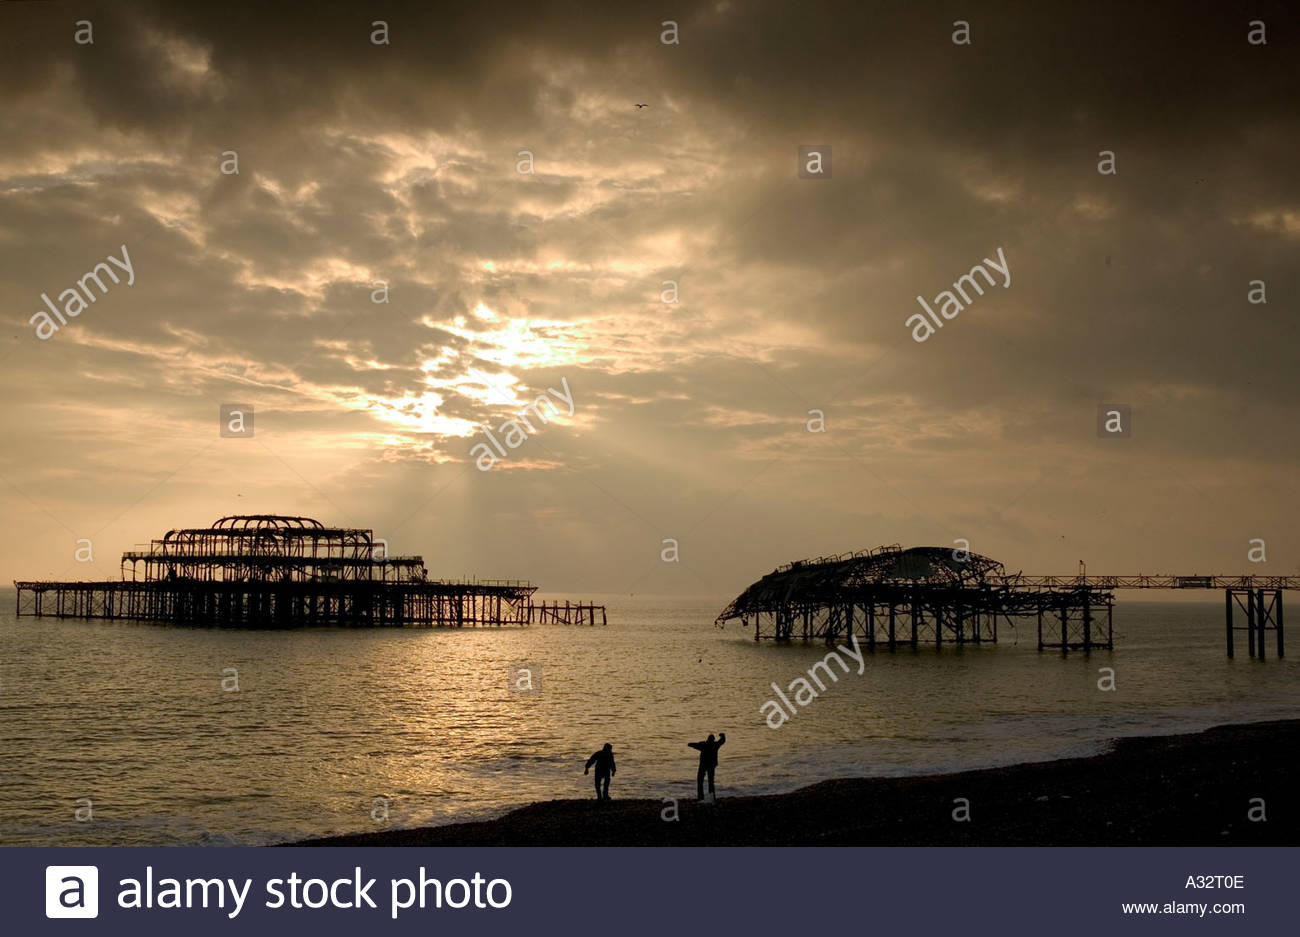 brighton seafront at sunset with the collapsed pier in the 1300x937